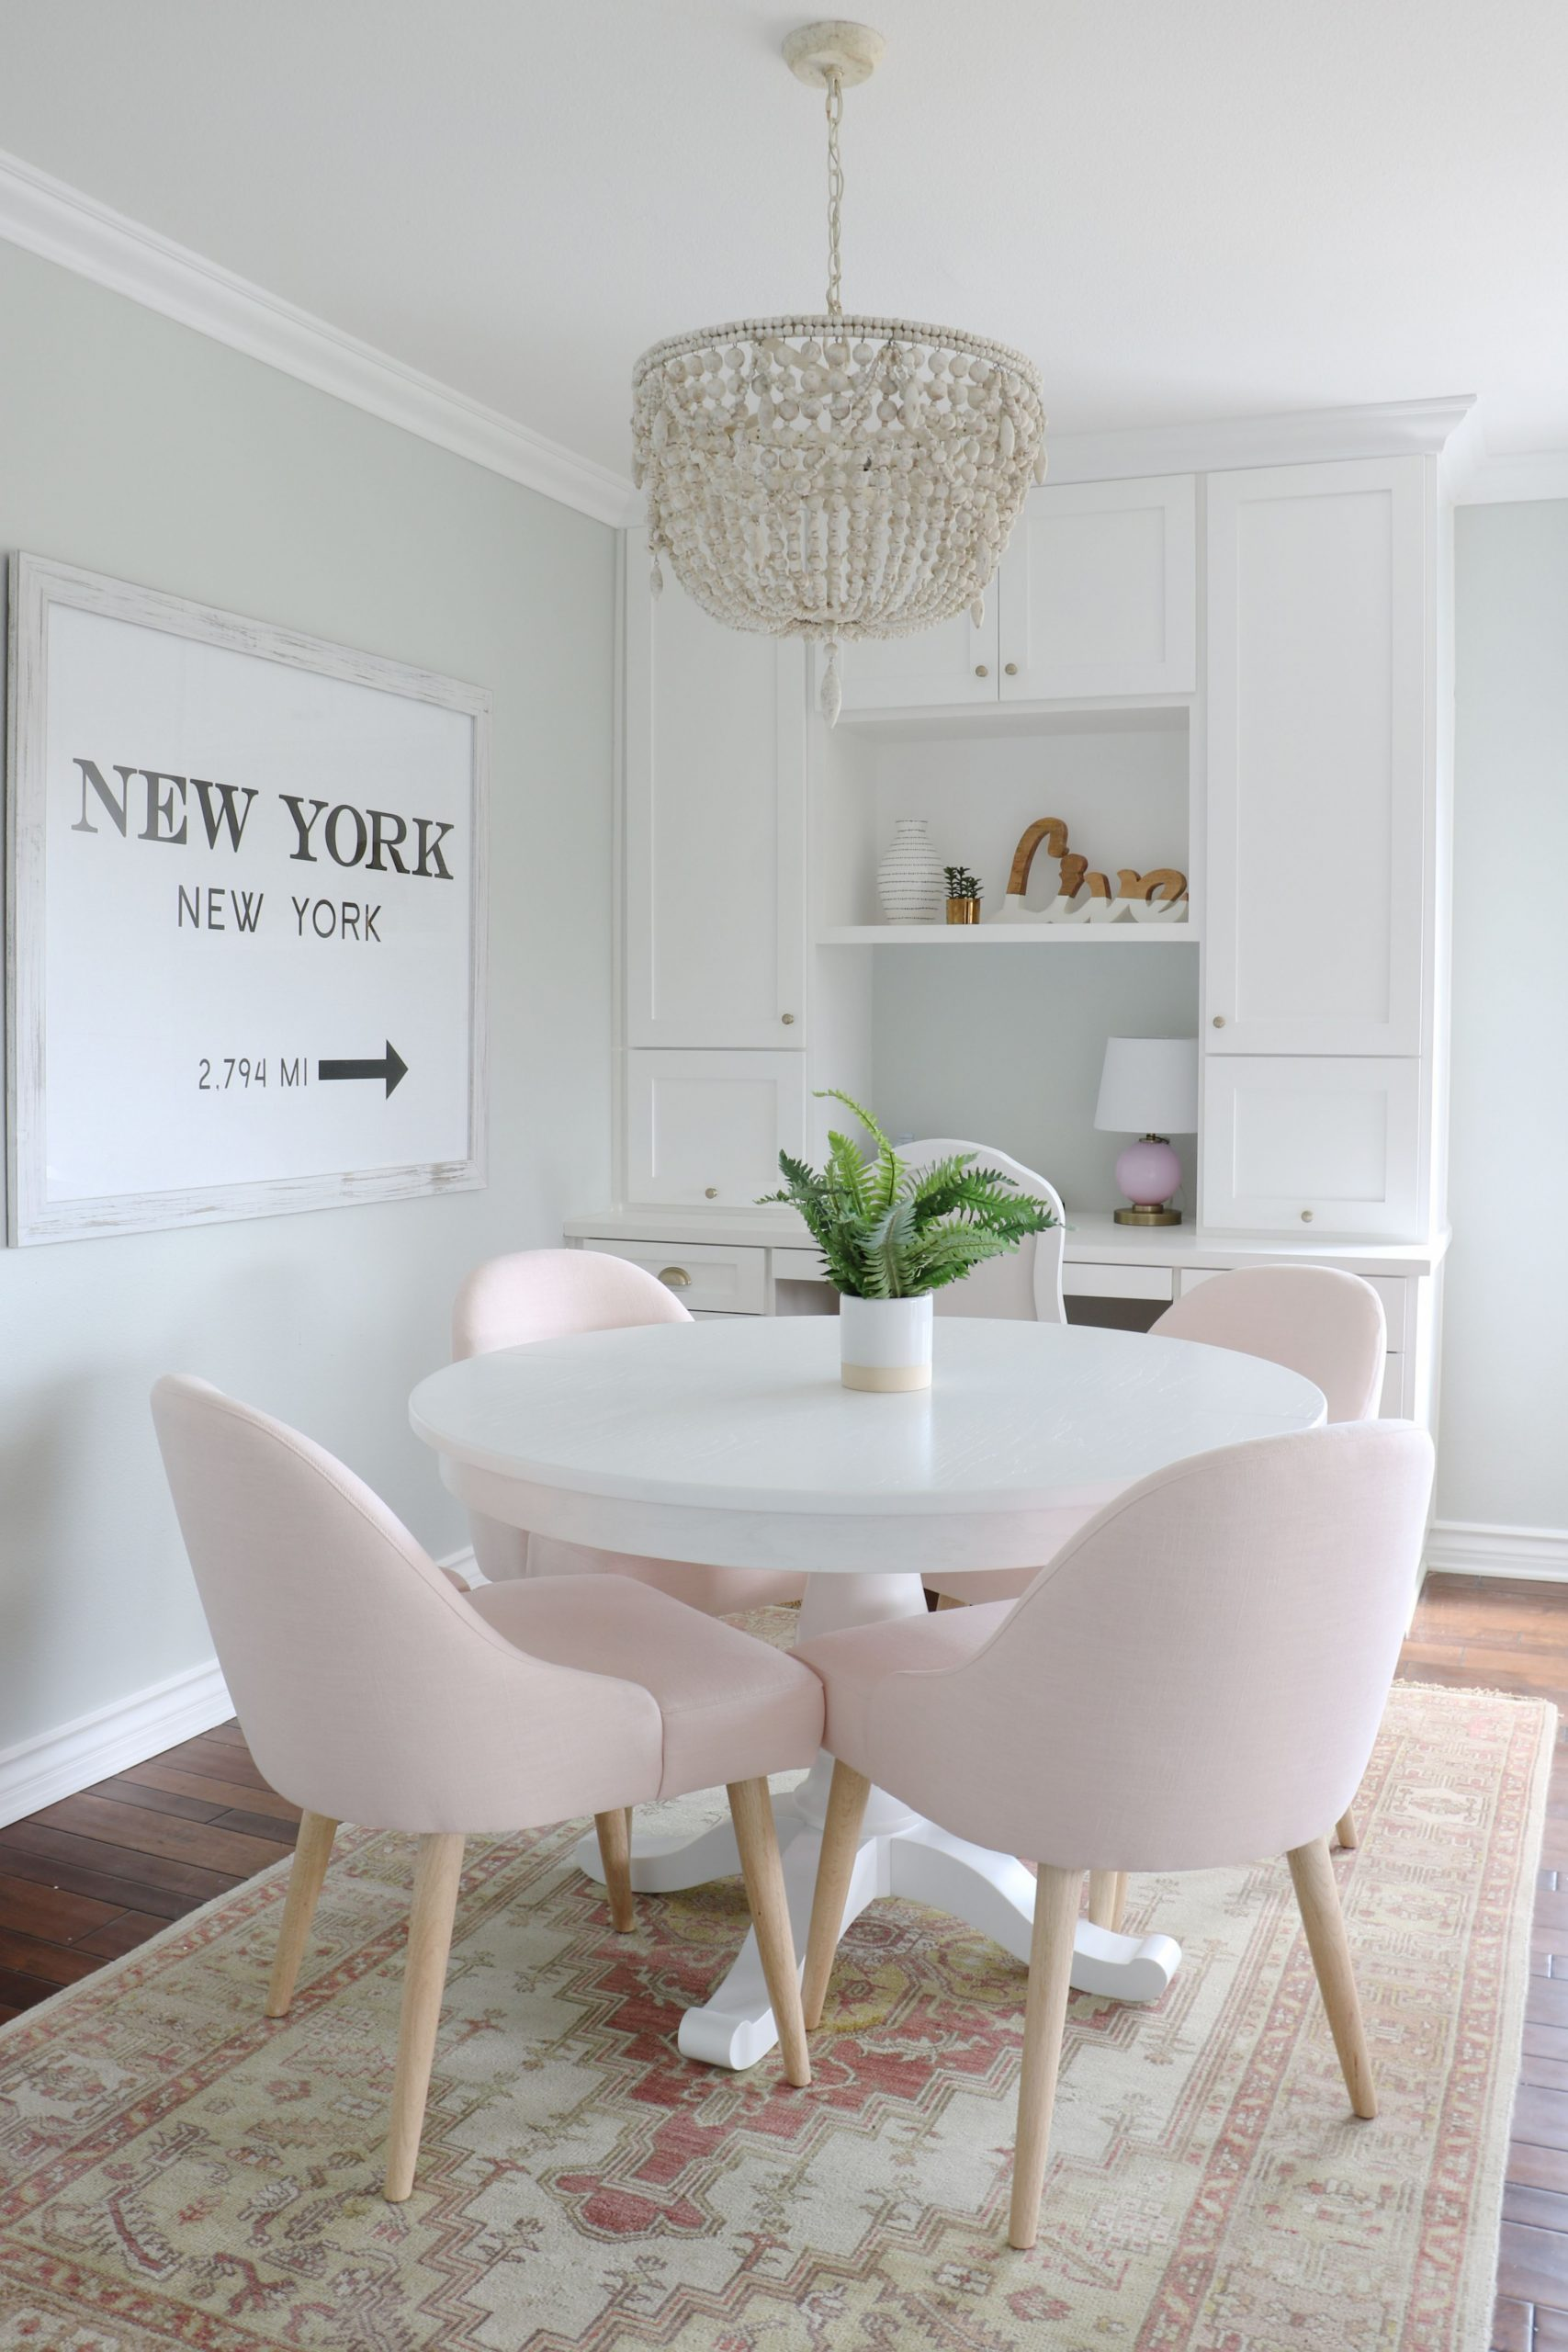 IMG_11 - Kathryn Sykora Home & Design  Dining room small, Pink  - Dining Room Ideas Small Spaces Pinterest